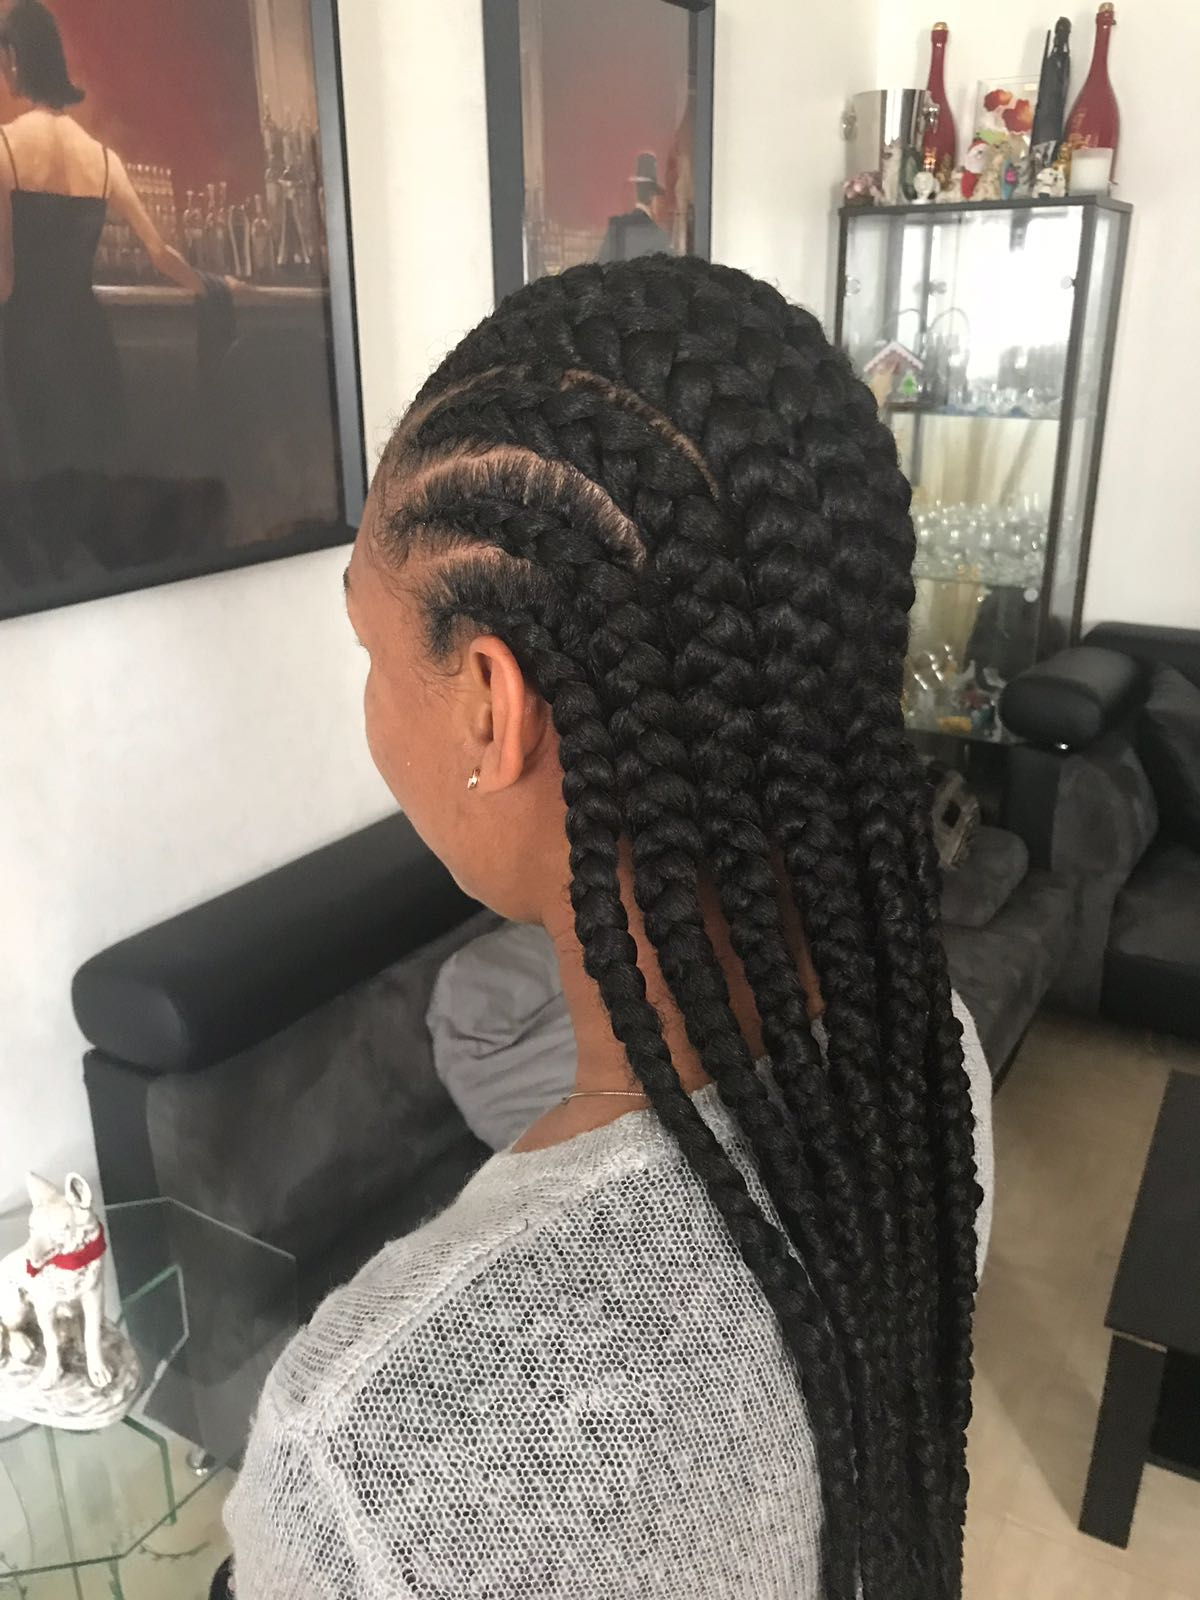 salon de coiffure afro tresse tresses box braids crochet braids vanilles tissages paris 75 77 78 91 92 93 94 95 ZSIKIRNO